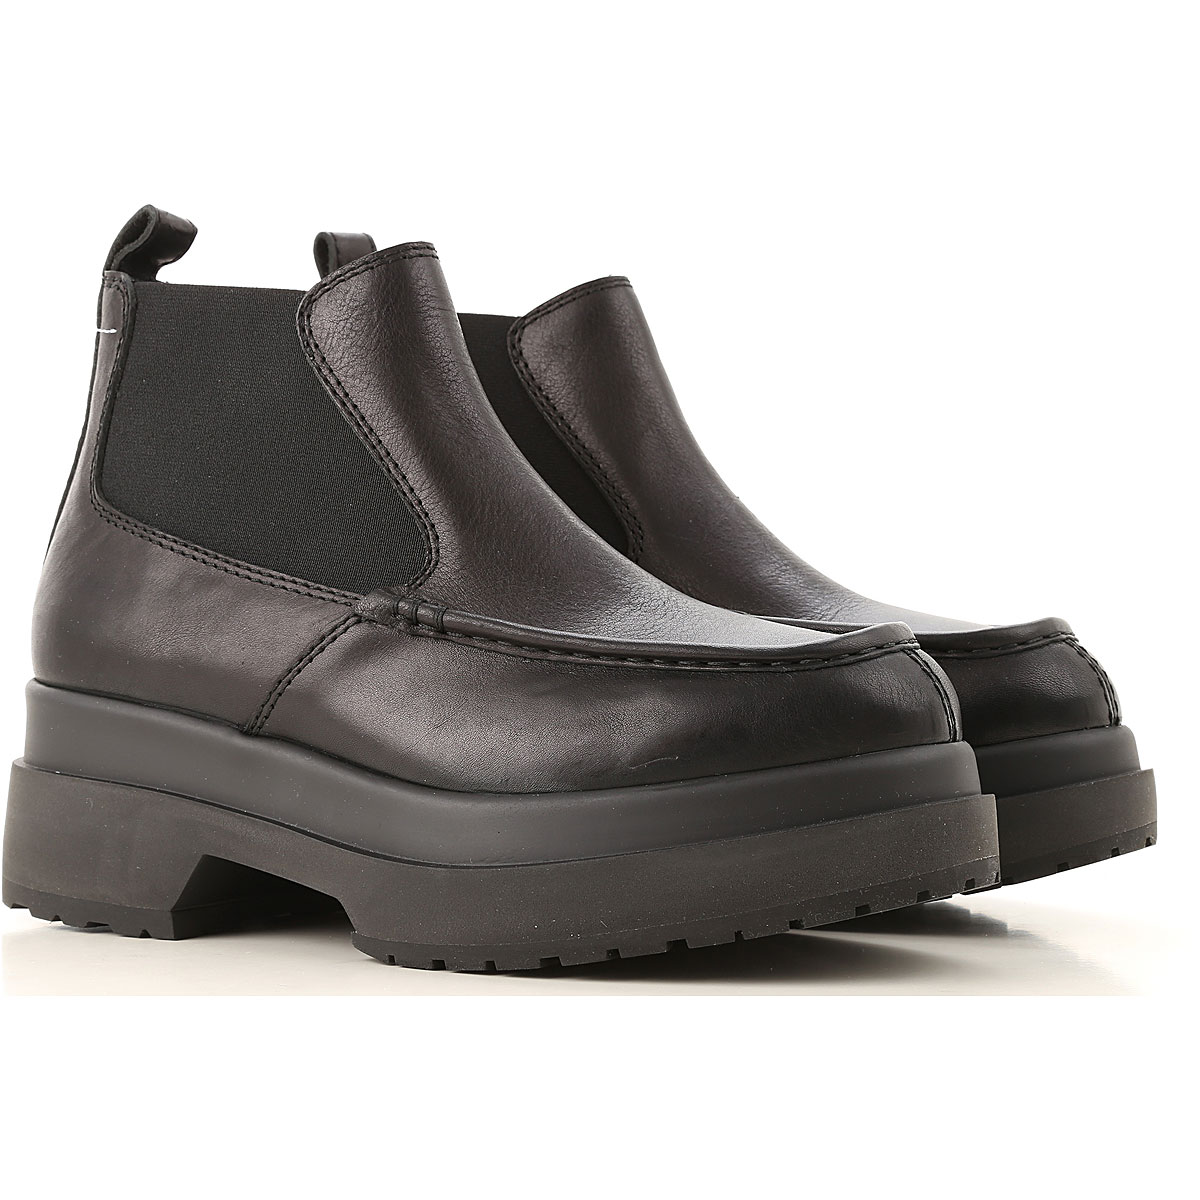 Maison Martin Margiela Chelsea Boots for Women On Sale in Outlet, Black, Leather, 2019, 5 7 8